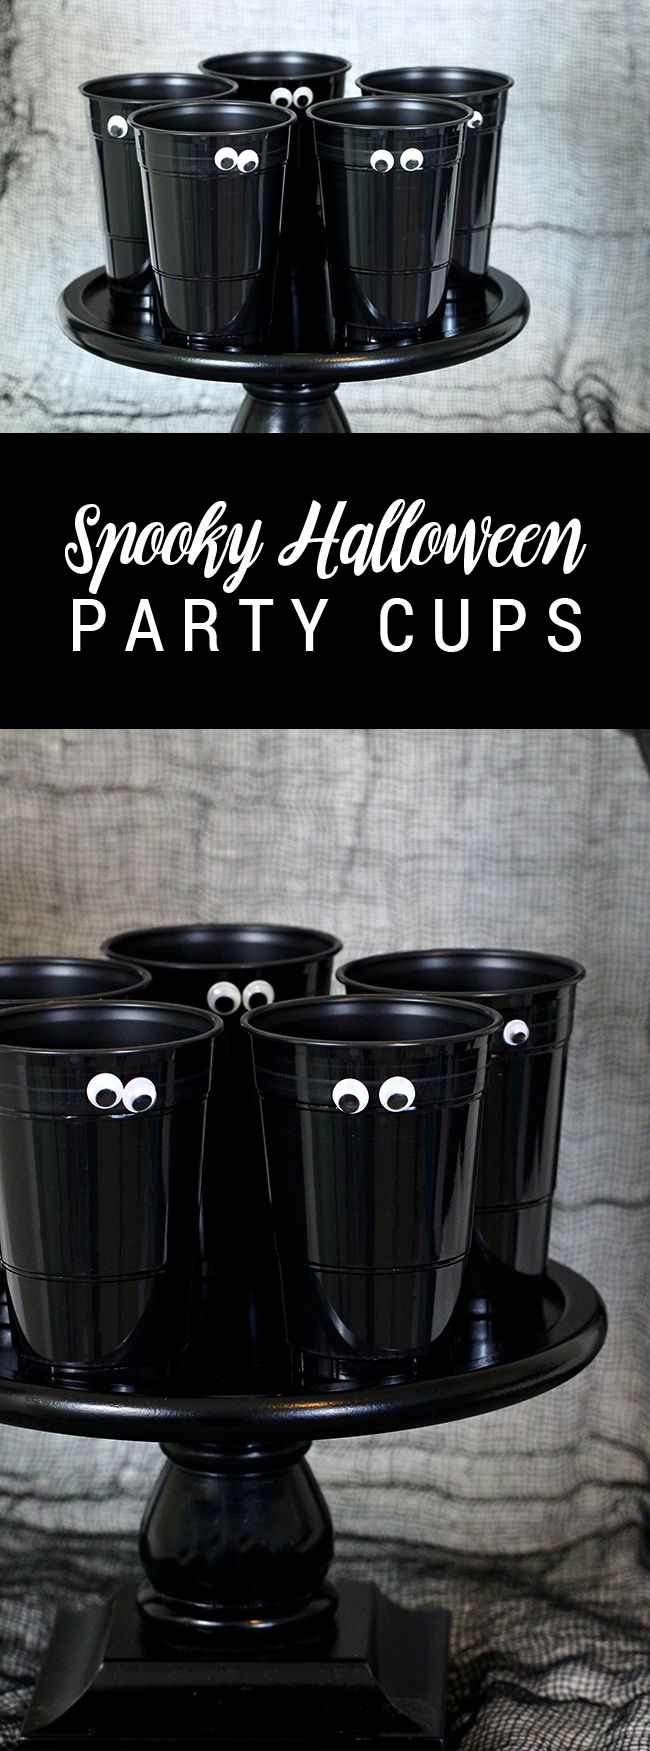 So easy, right? DIY Spooky Halloween Party Cups ..